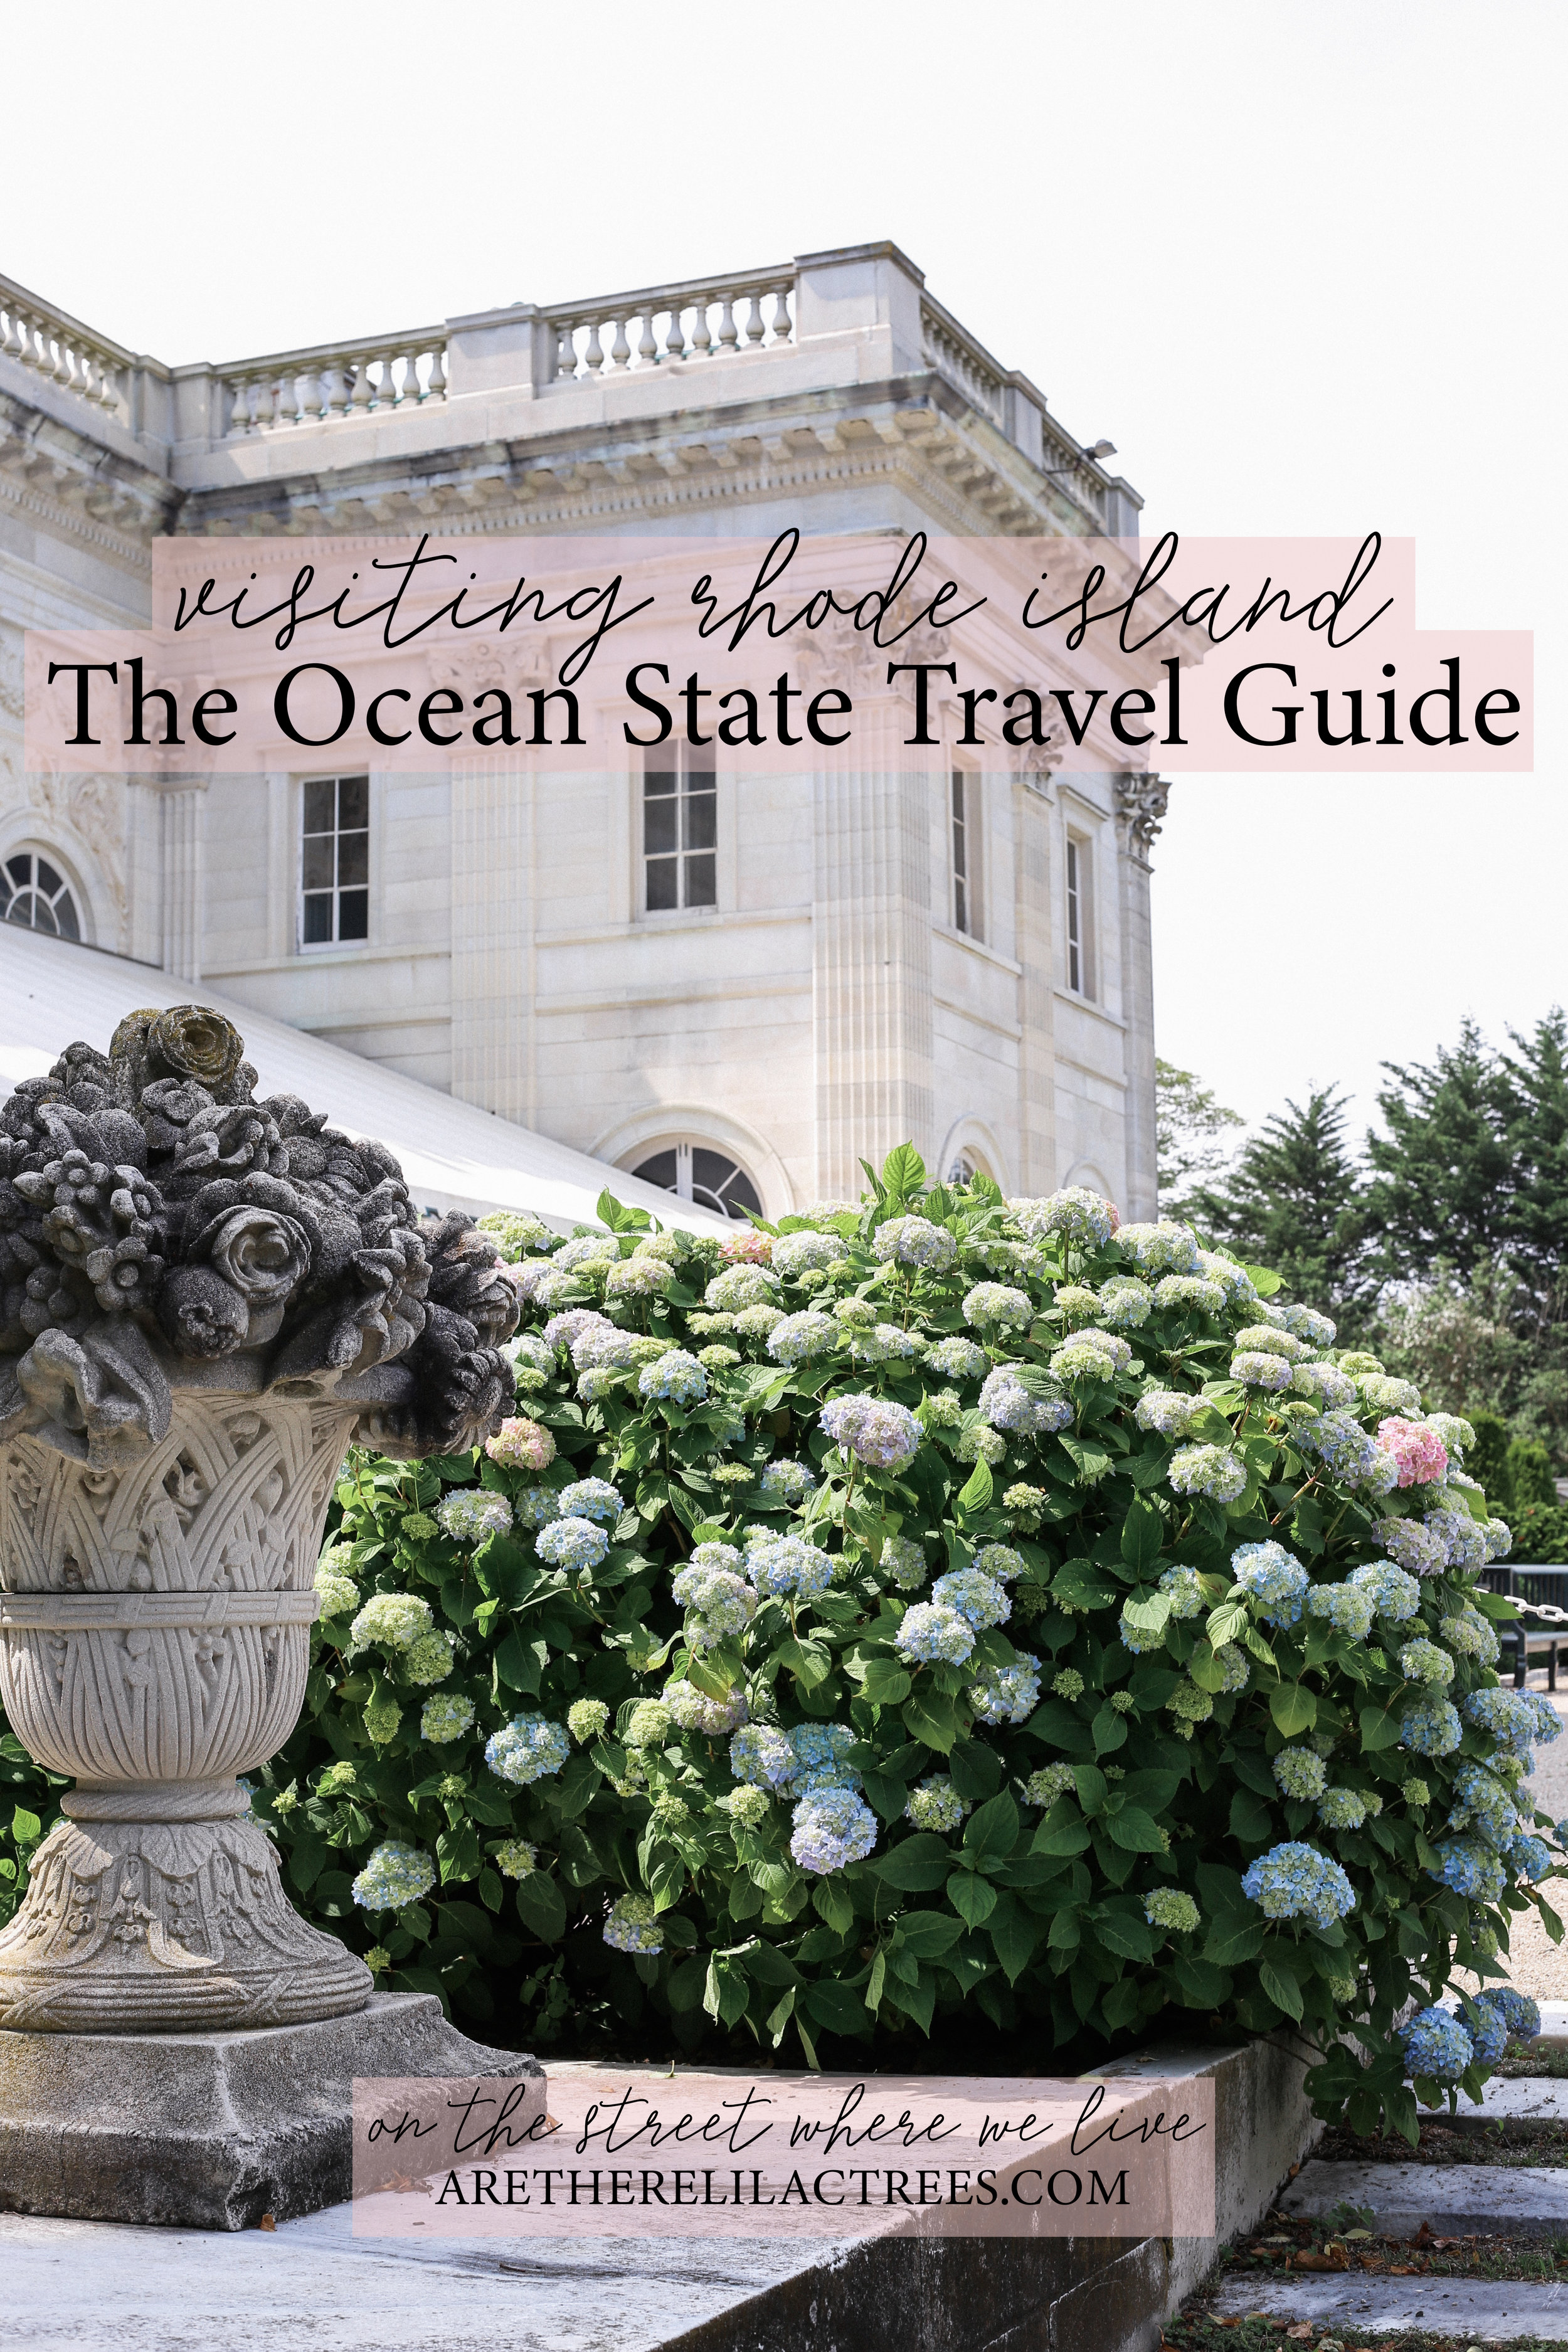 Visiting Rhode Island: The Ocean State Travel Guide | On the Street Where We Live ( aretherelilactrees.com )